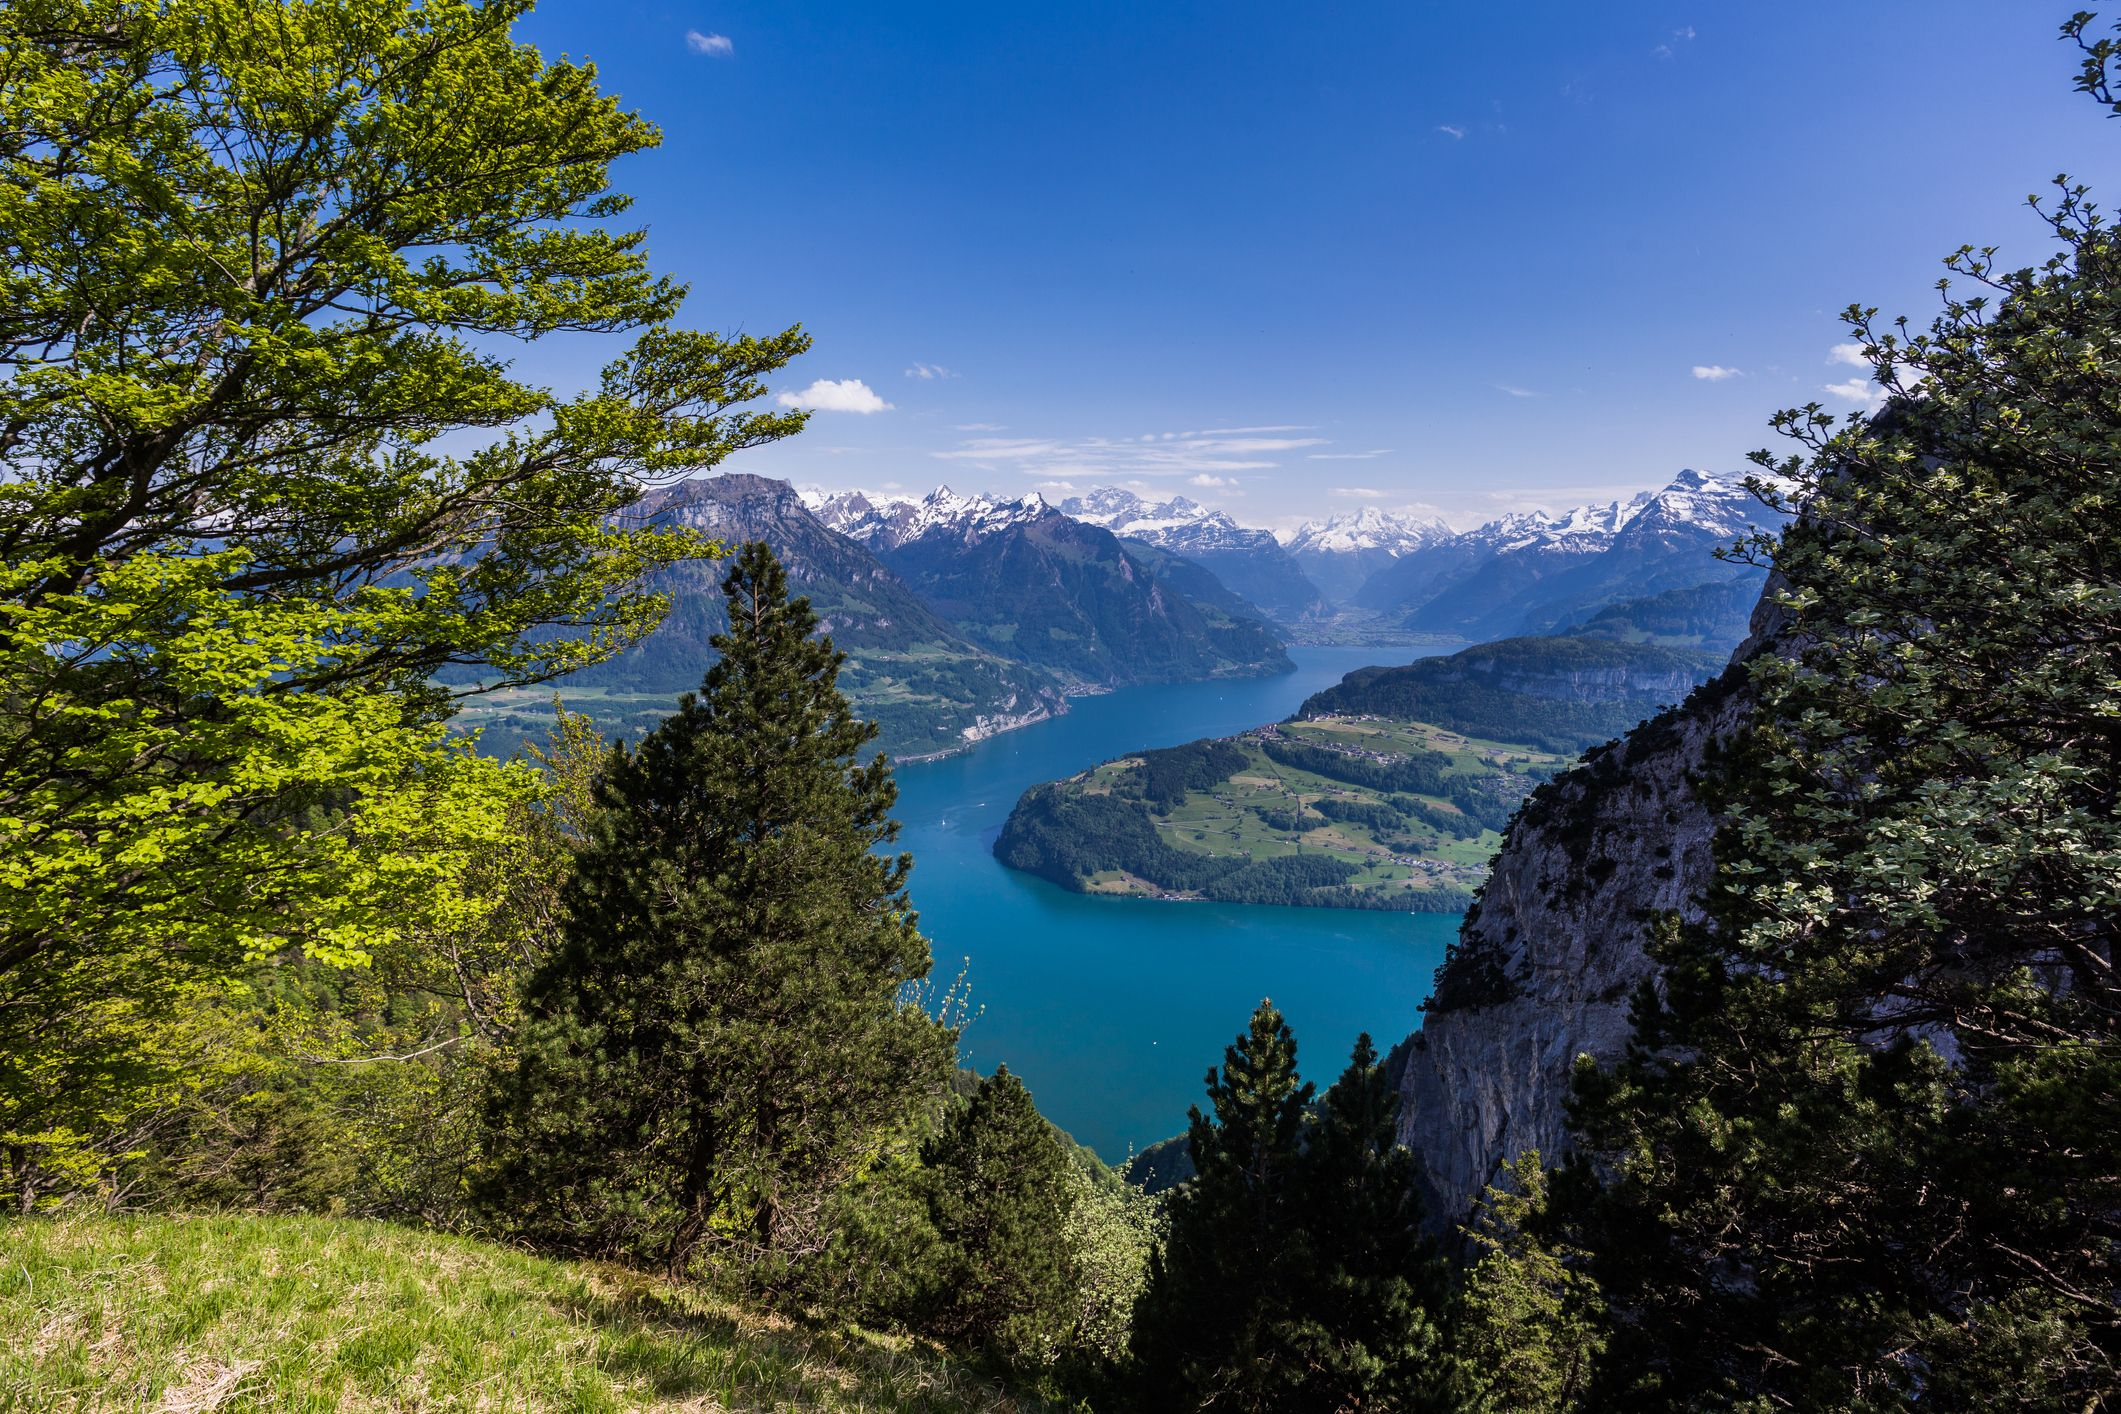 5 European lakes and mountains holidays that don't involve climbing